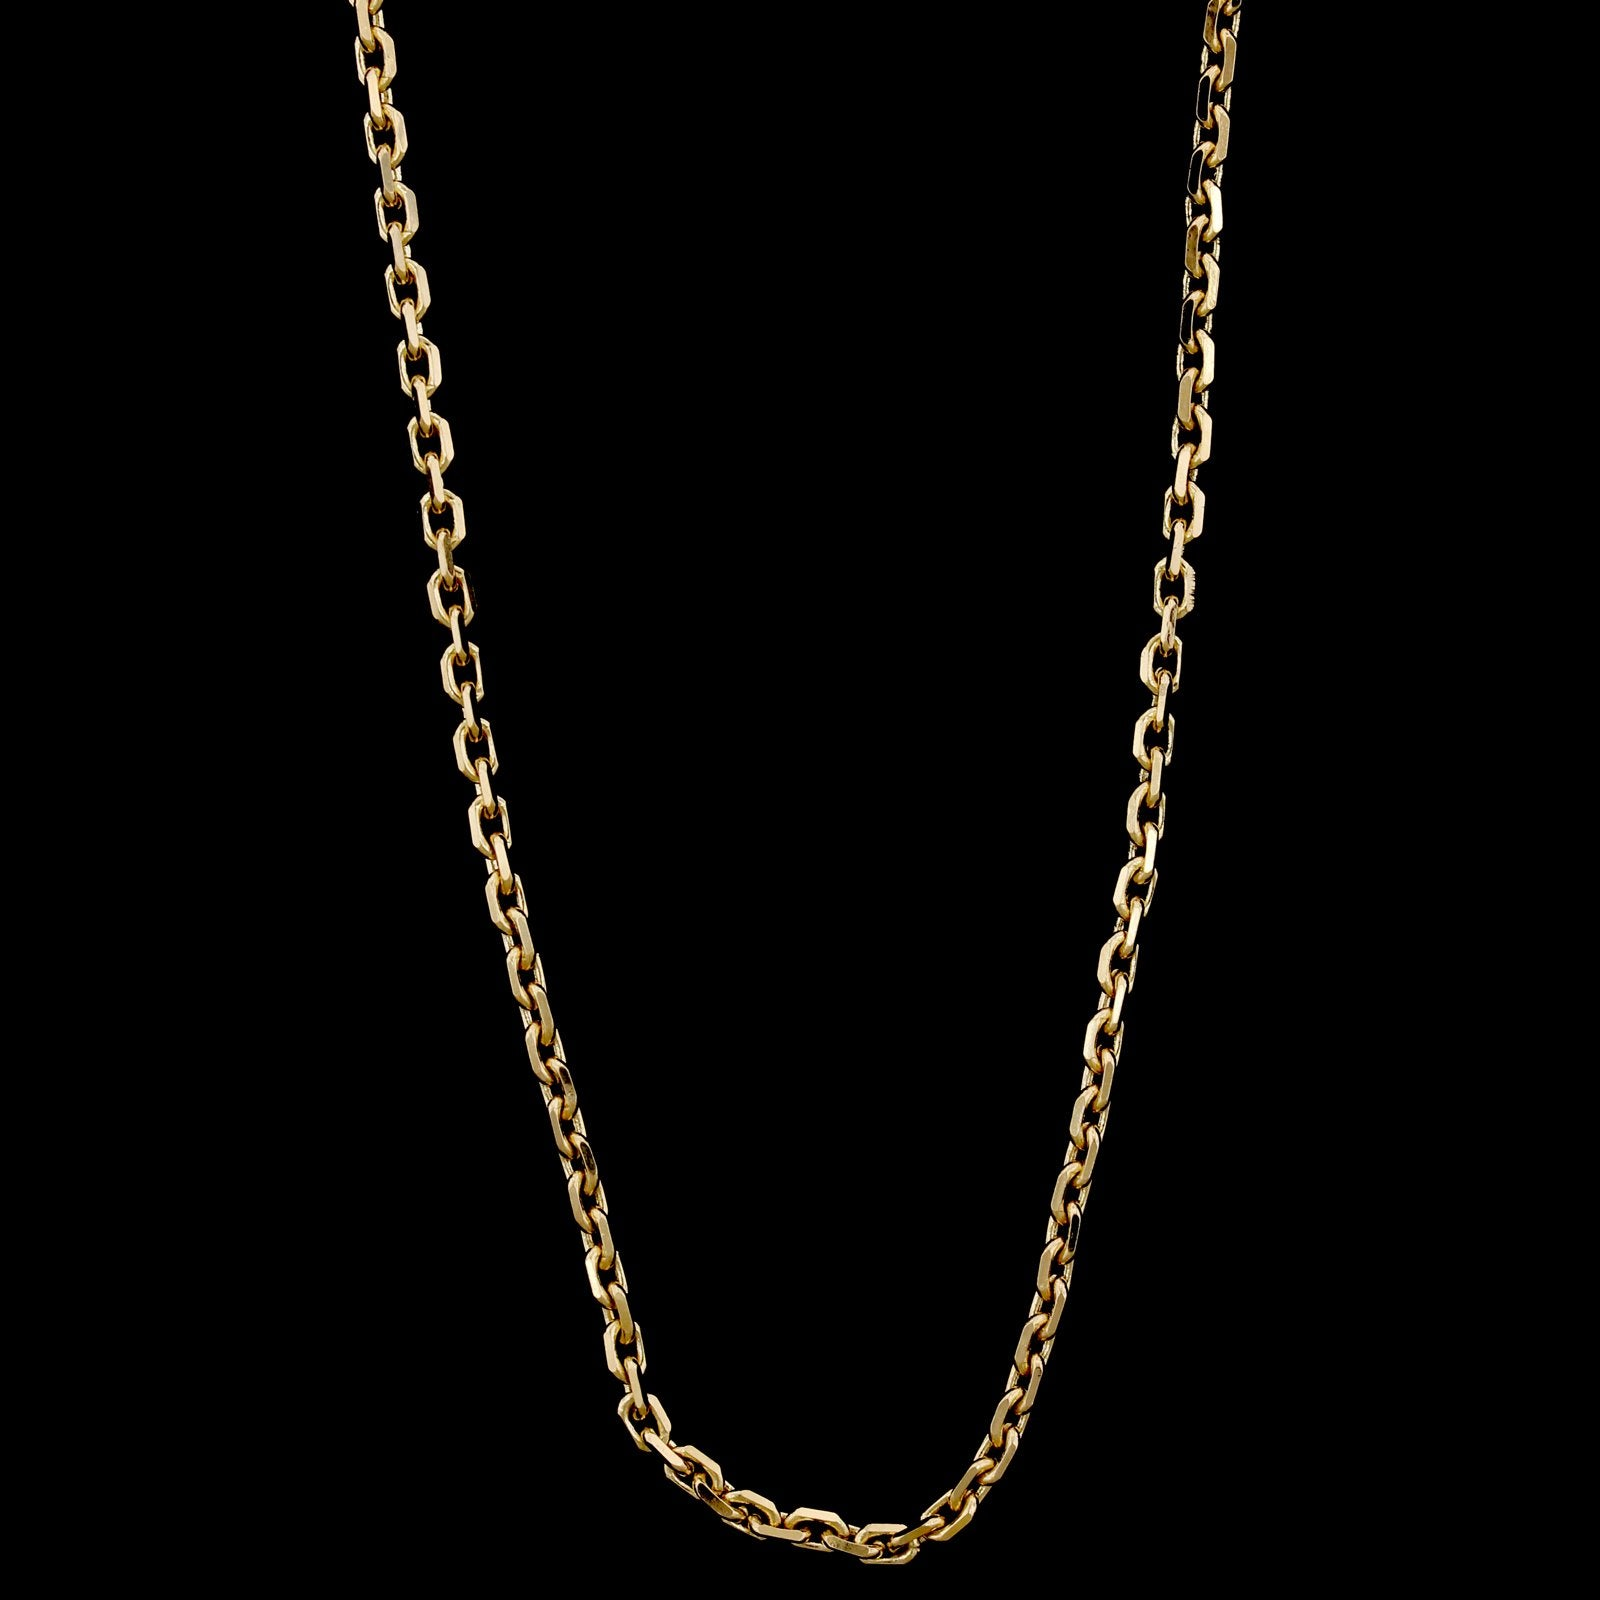 18K Yellow Gold Estate Anchor Chain